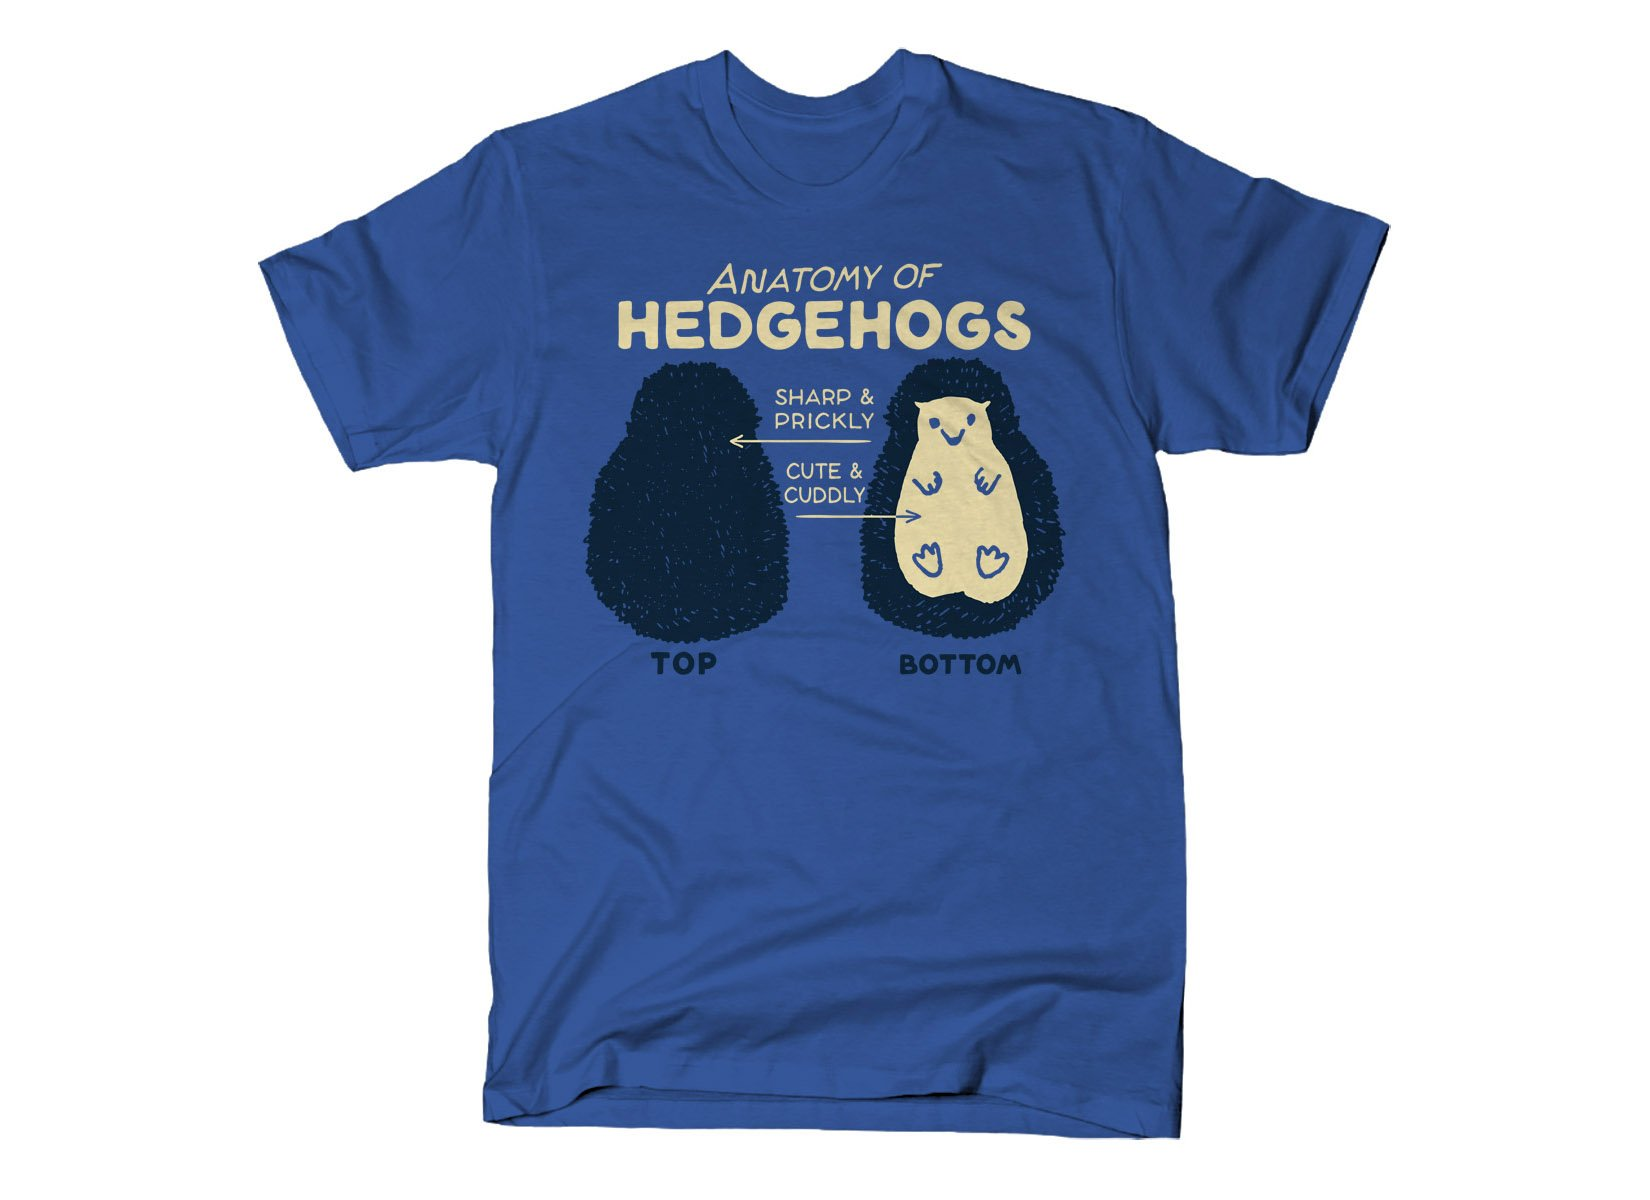 Anatomy Of Hedgehogs on Mens T-Shirt